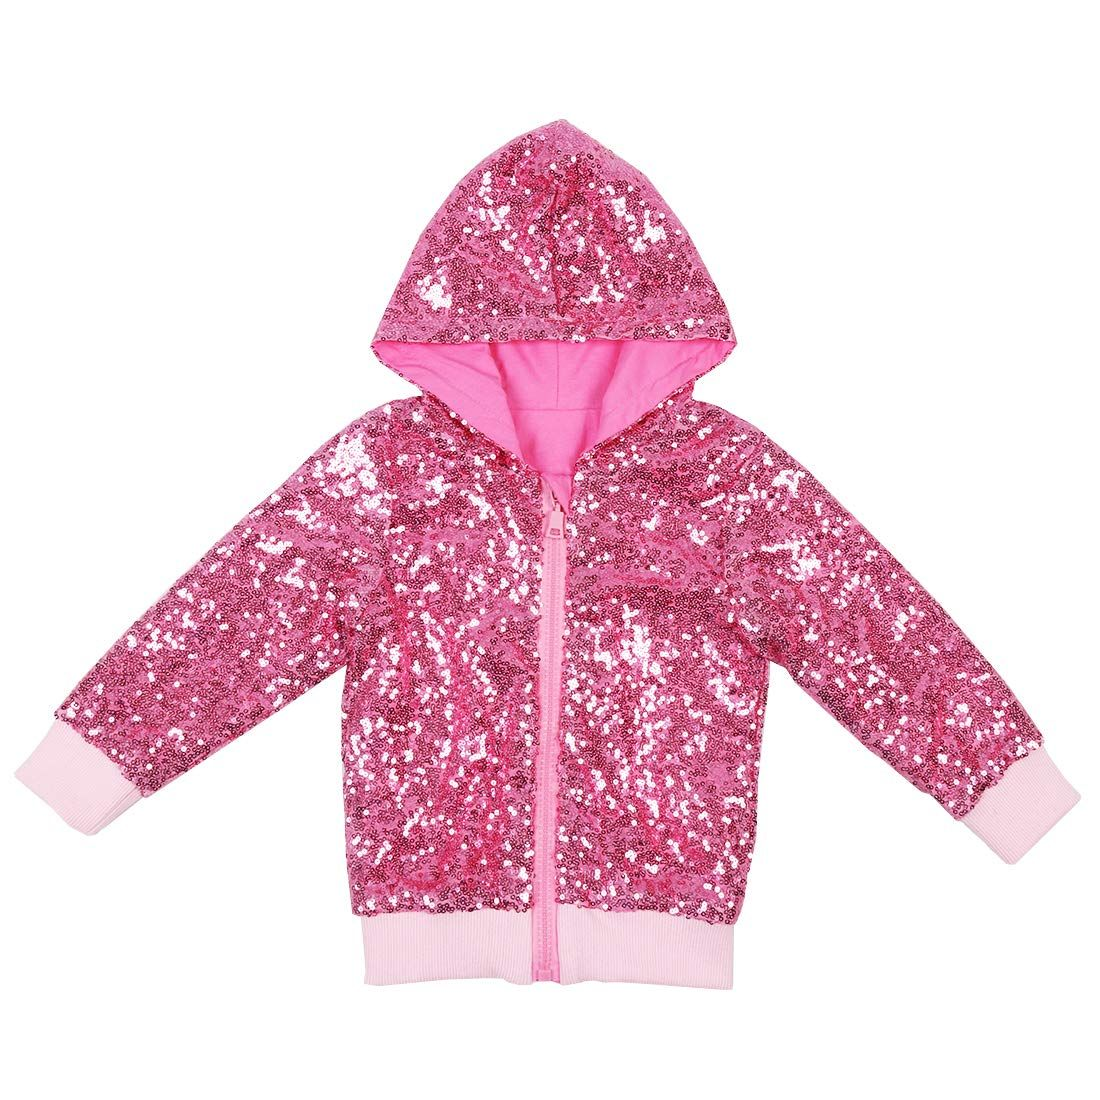 HZYBABY Toddler Baby Girls Boys Winter Warm Down Vests Jackets Kids Lightweight Puffer Coat